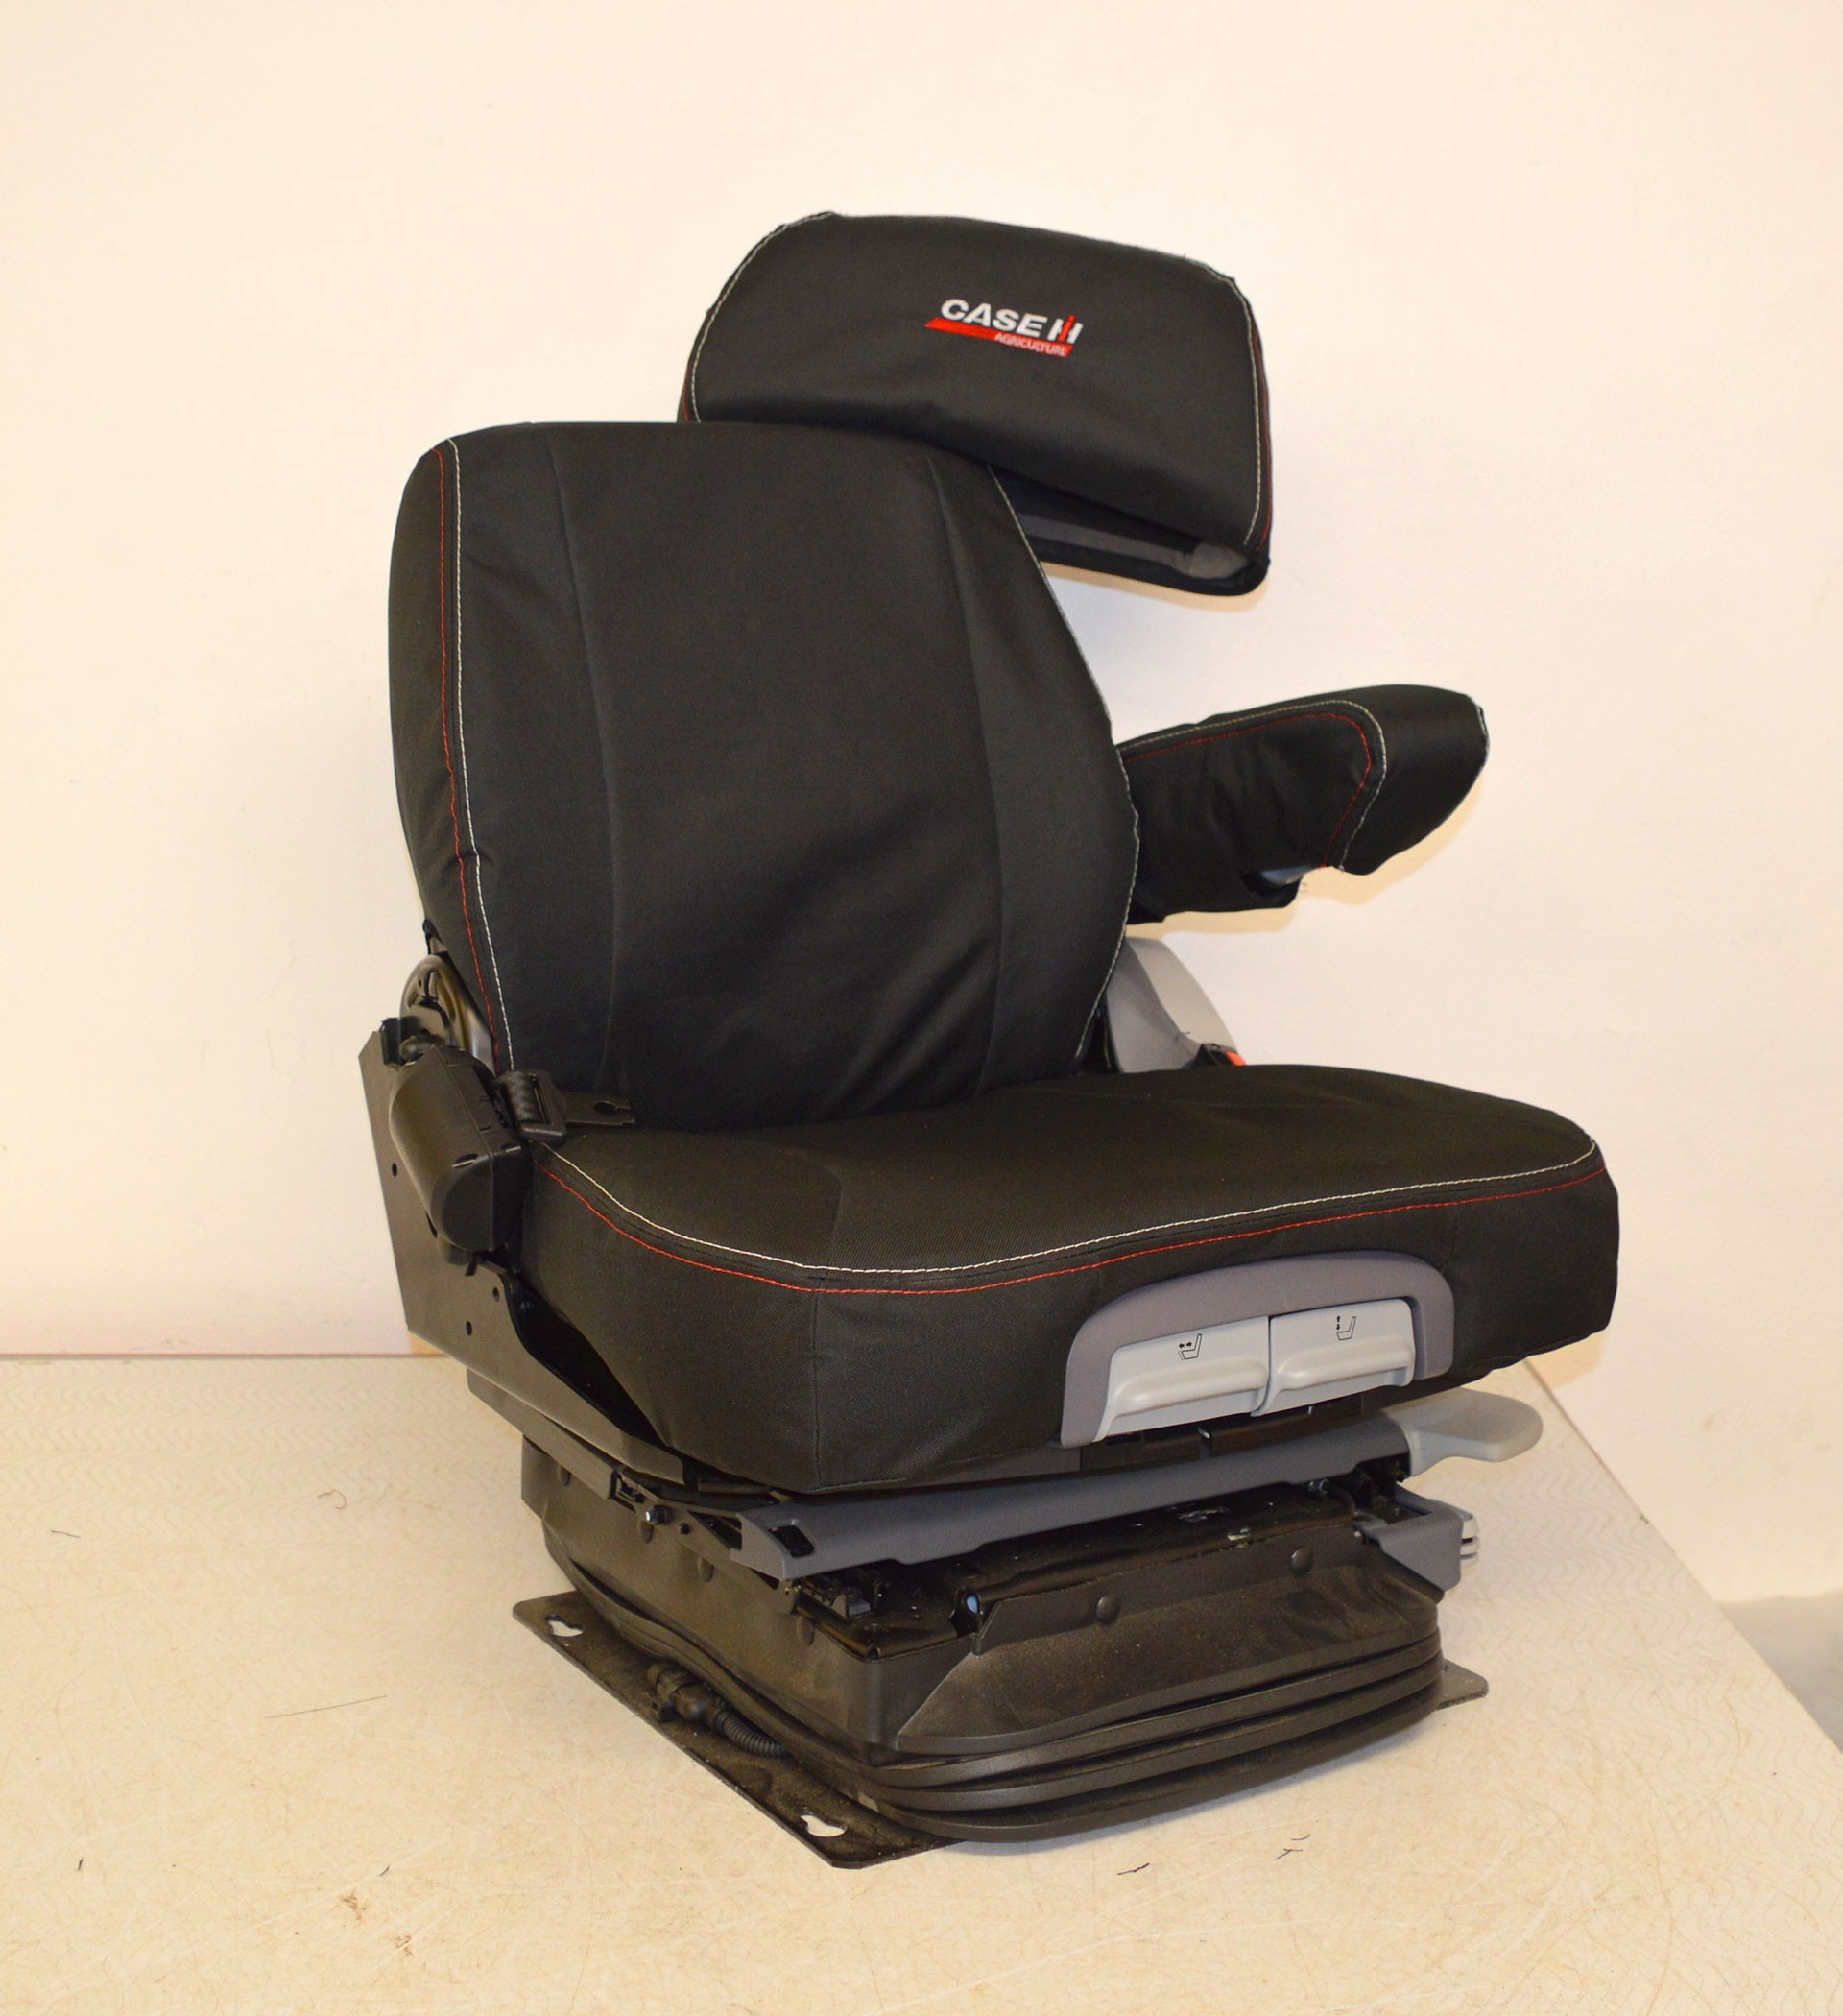 Case IH Grammer Maximo Dynamic Plus Tailored Seat Covers